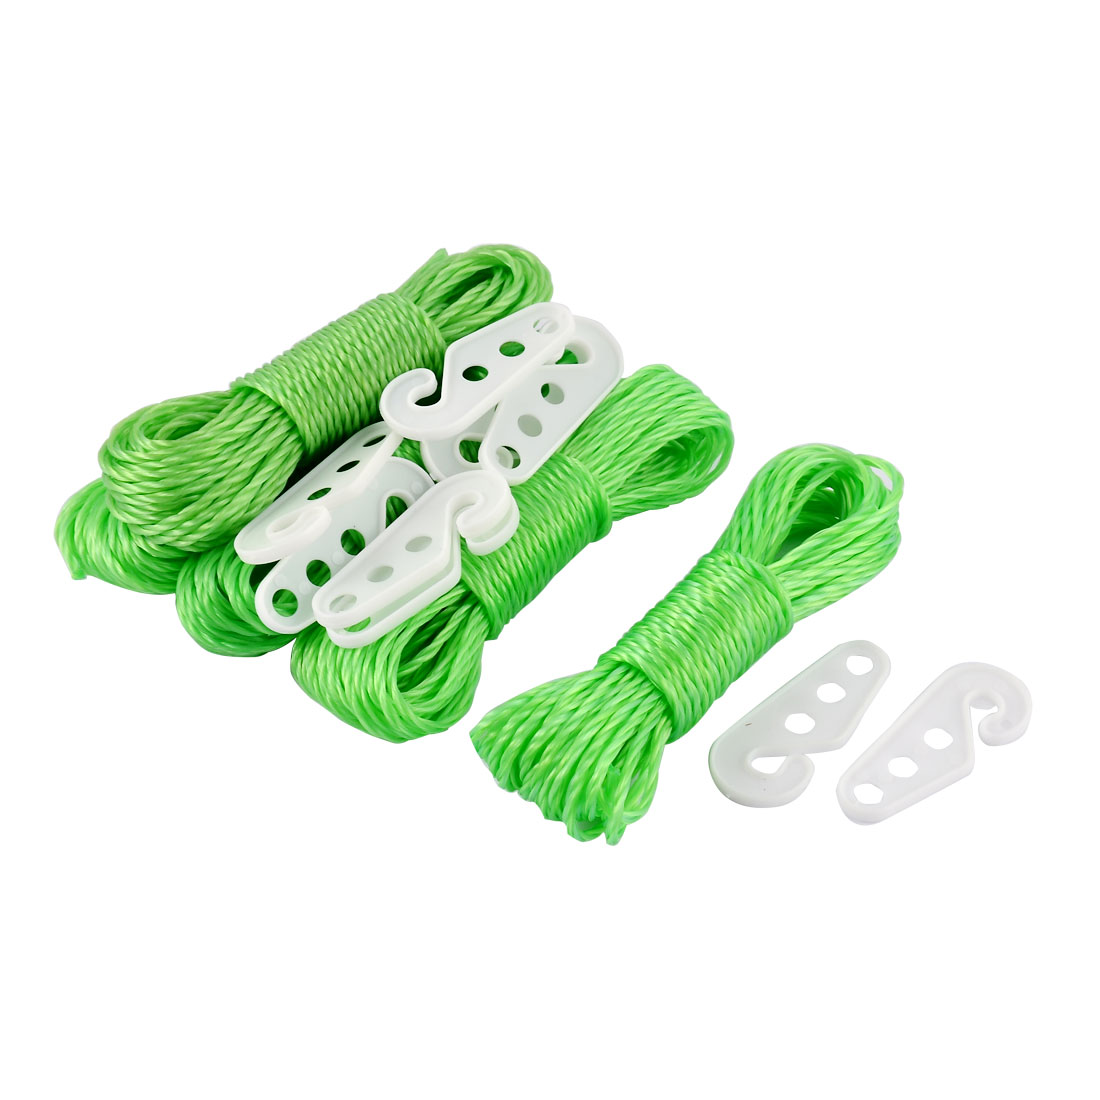 Nylon Line Laundry Hanging Clothes Rope Clothesline 10M 33Ft Long Green 5PCS